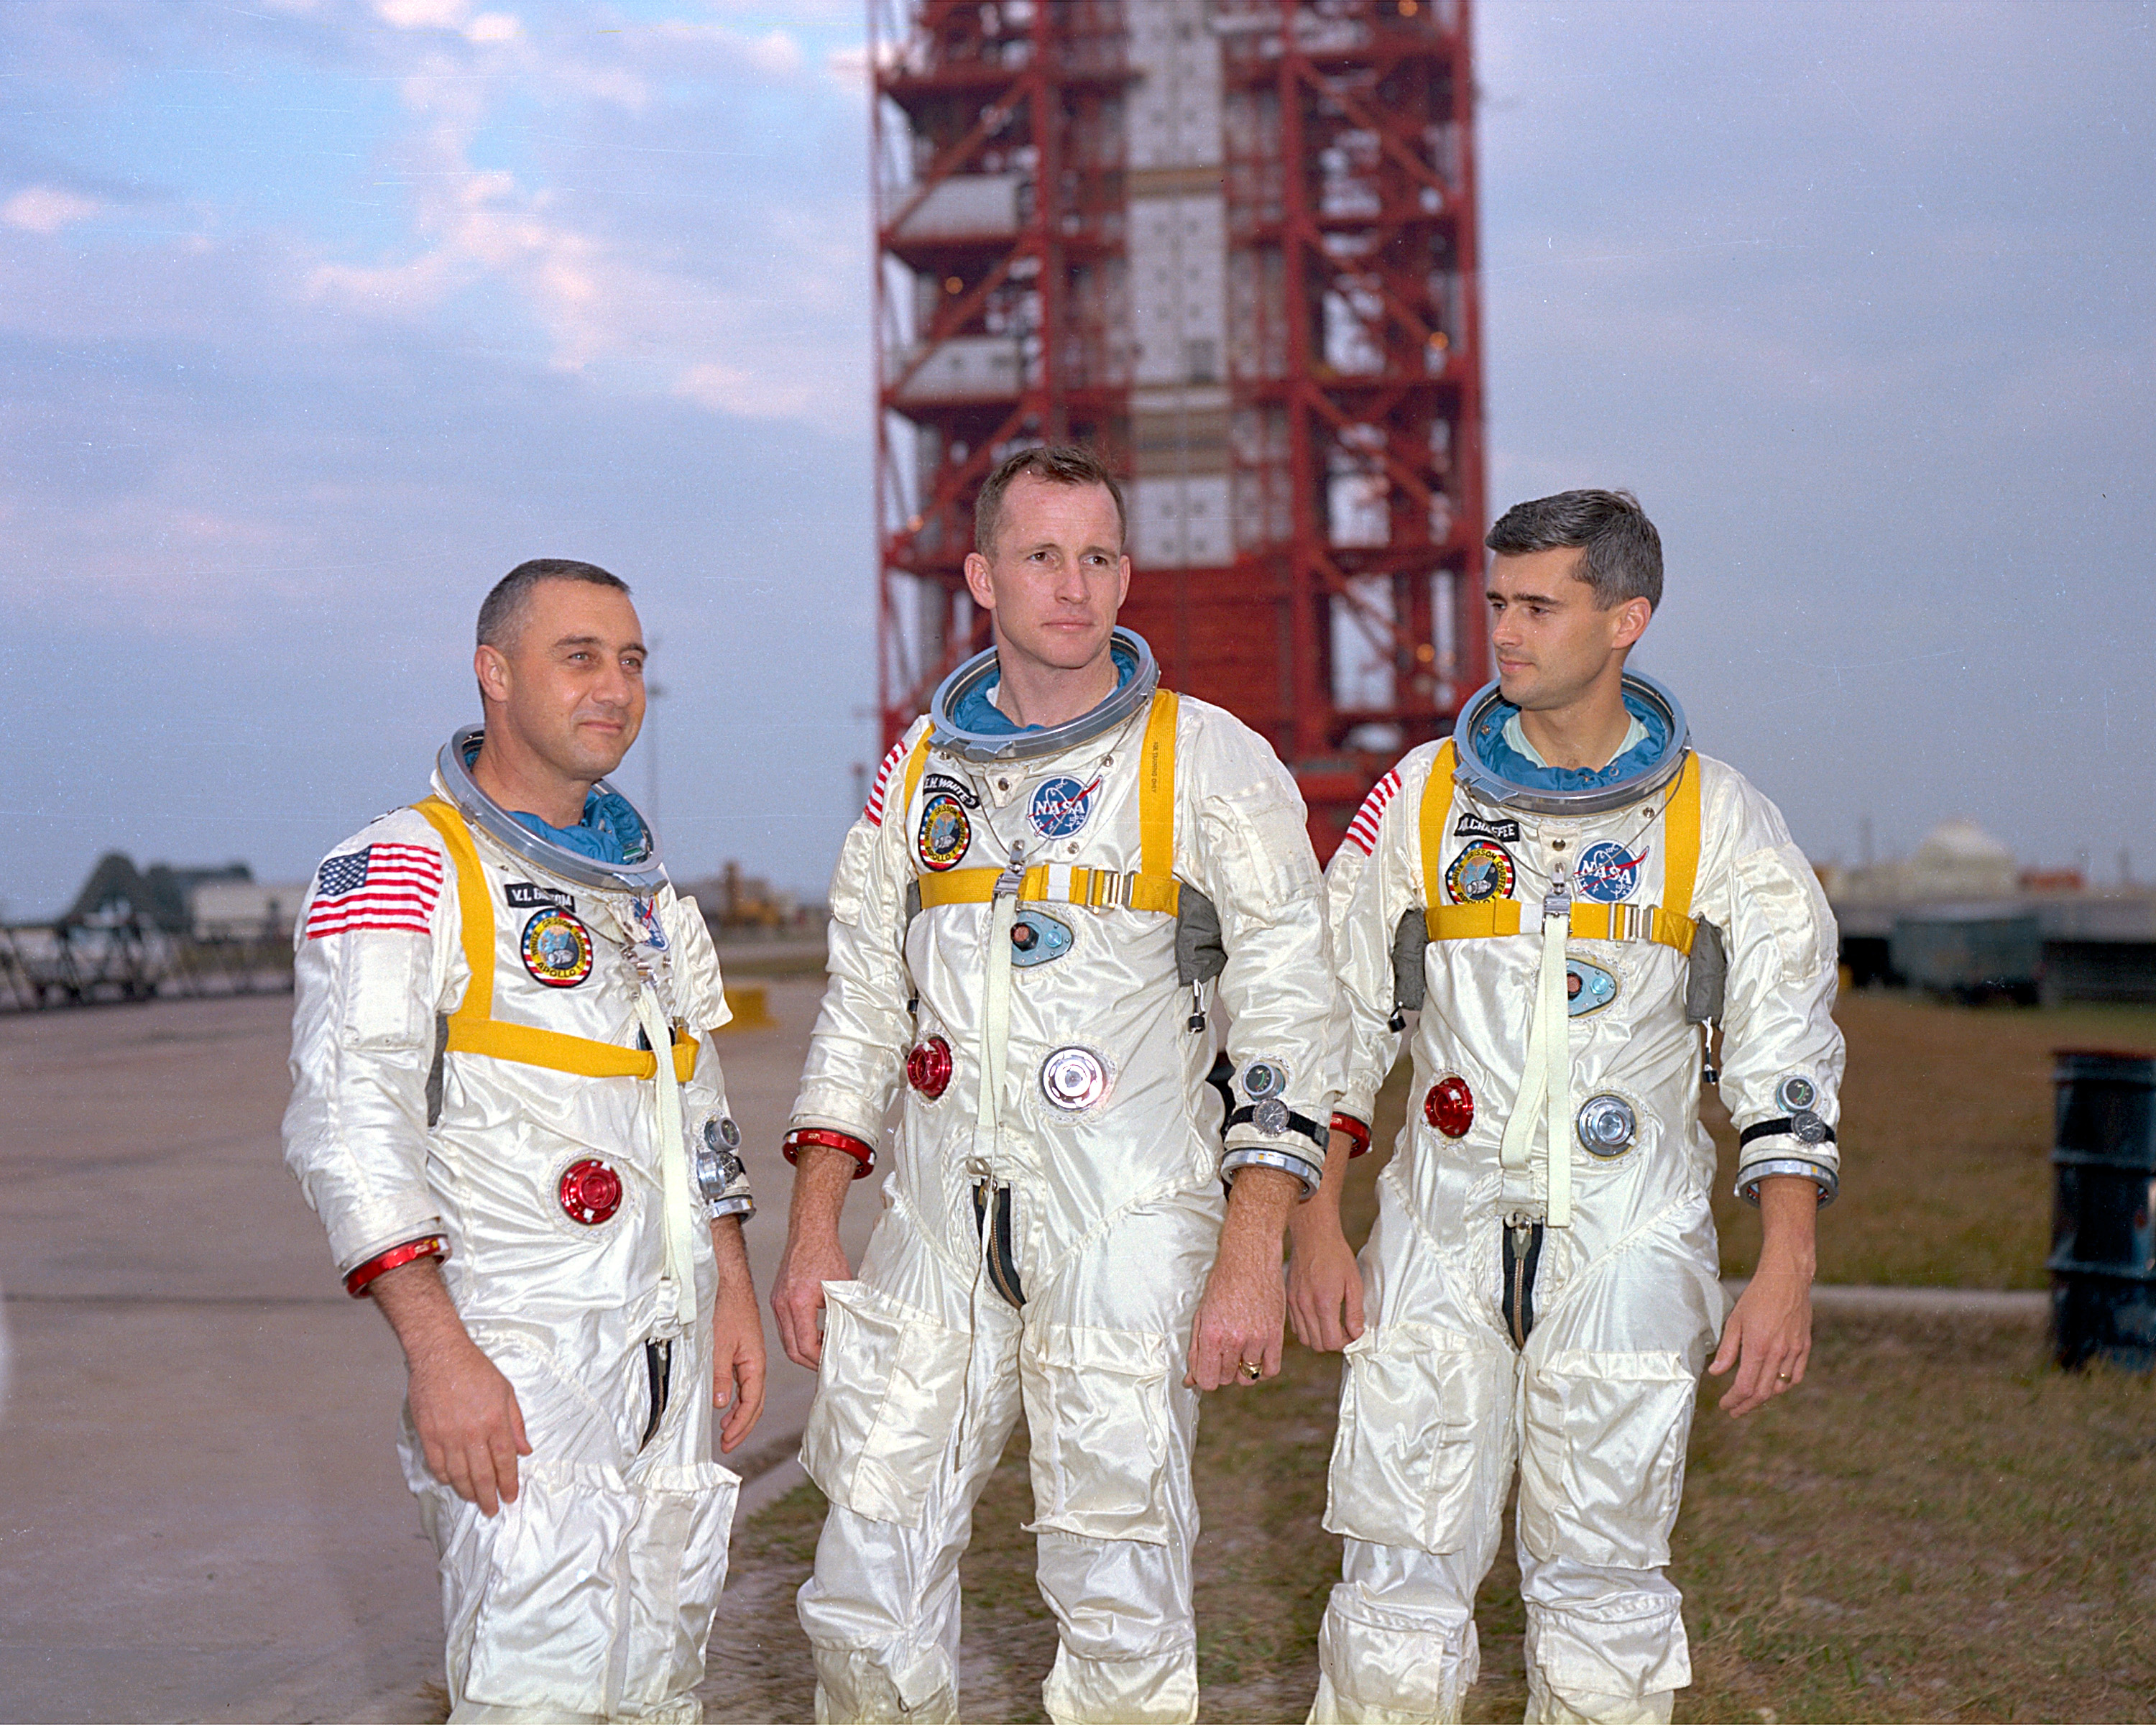 Astronauts Virgil Grissom, Edward White and Roger Chaffee were killed in the Apollo 1 fire. Credit: NASA